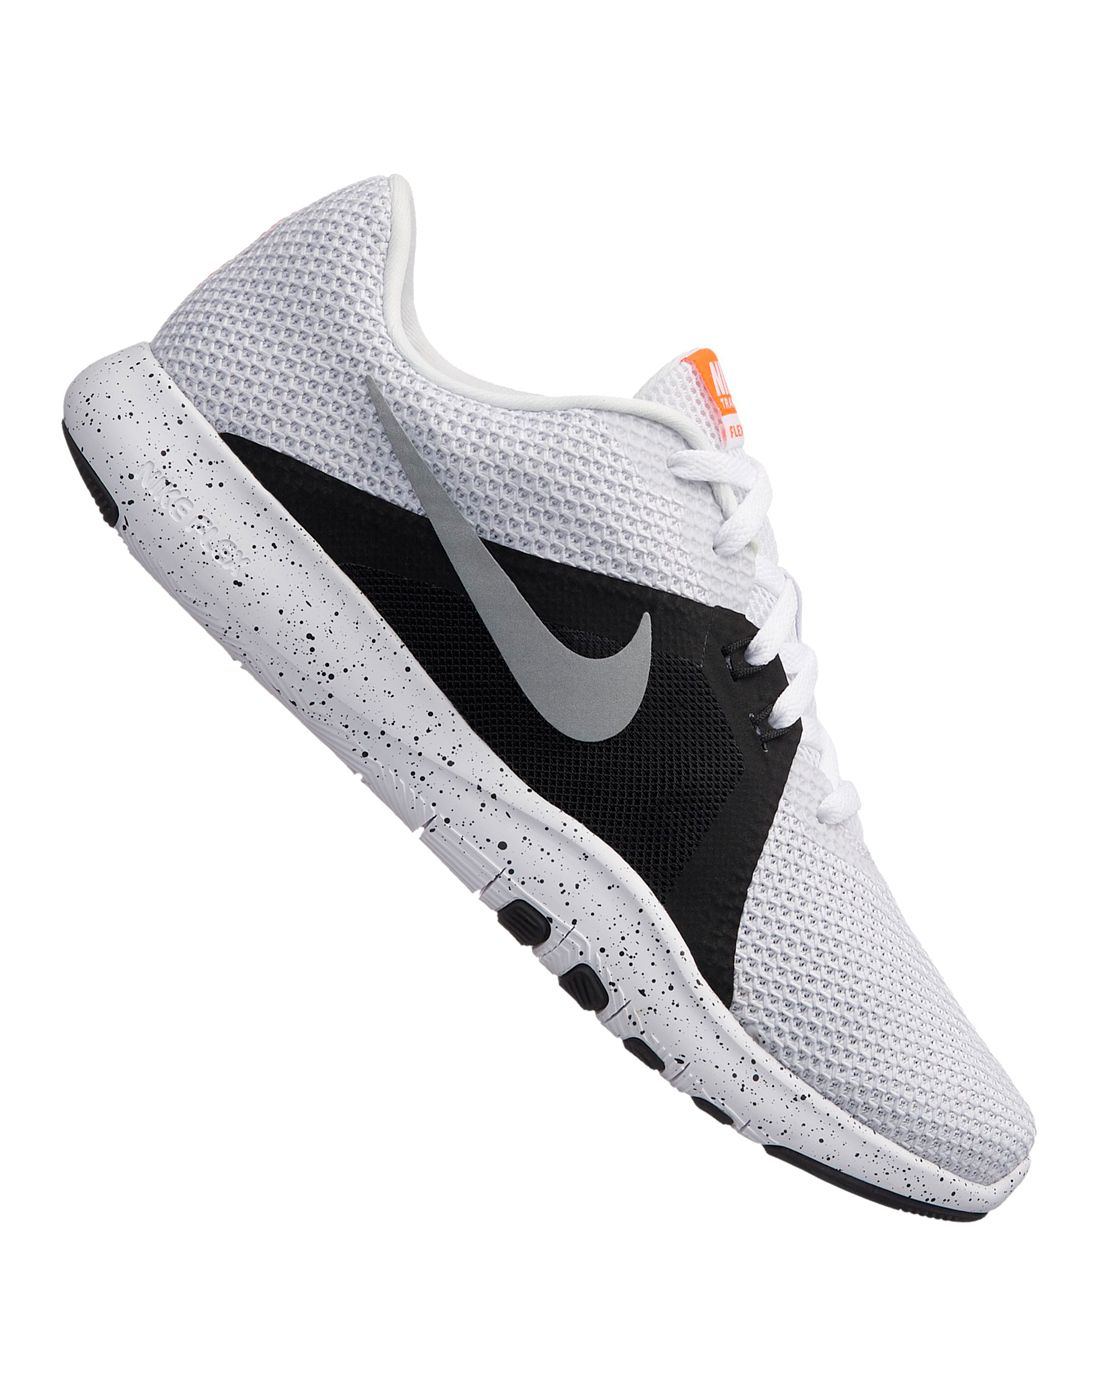 c4b5f75d11ff Women s Nike Flex Trainer 8Trendy style meets top performance with the Nike  Flex Trainer 8.